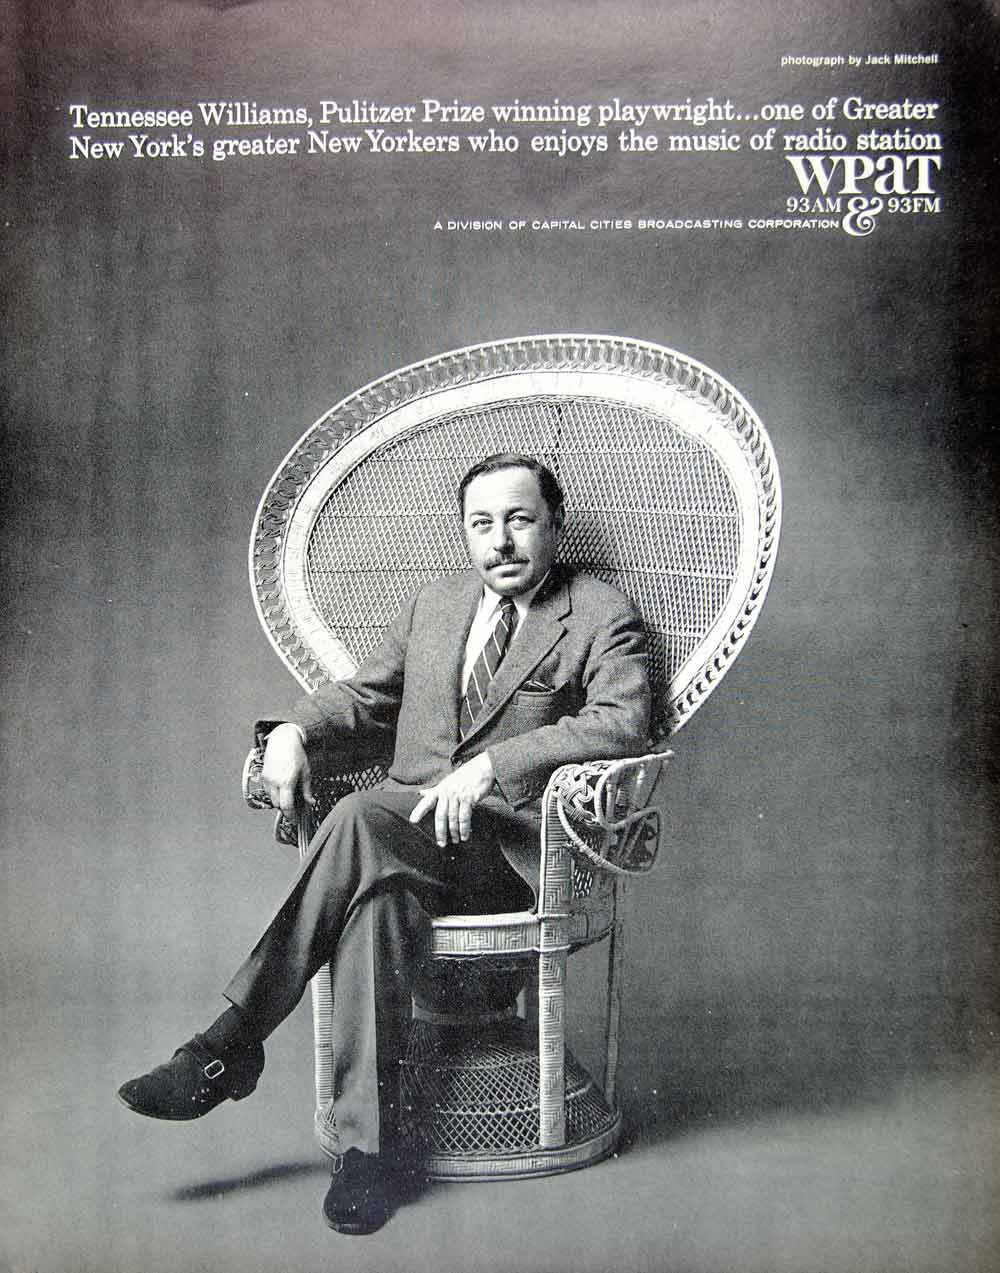 1966 Ad WPAT Radio Station Patterson NJ Tennesse Williams Playwright Author YFM3